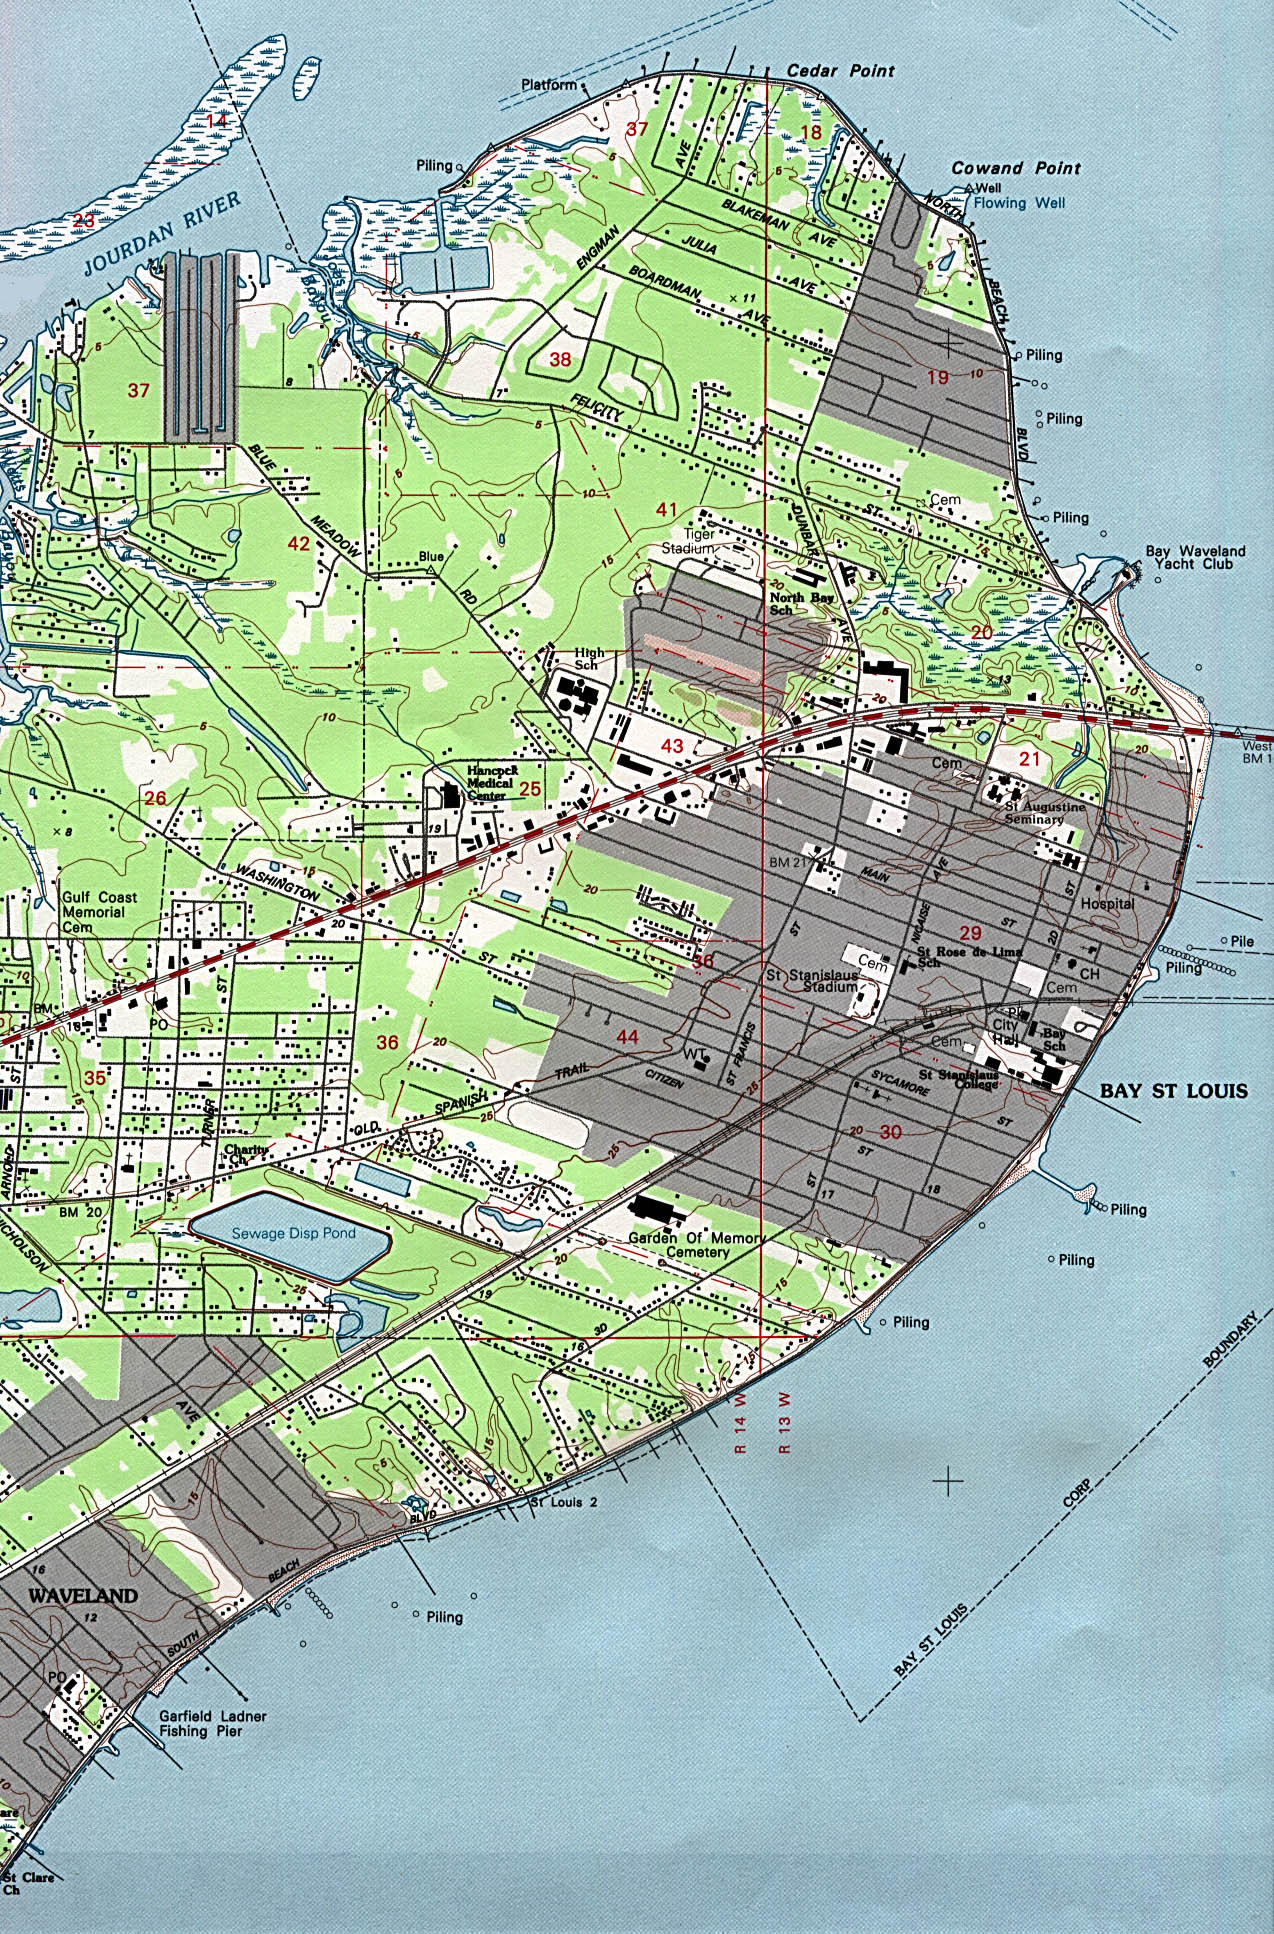 Bay Saint Louis Topographic City Map, Mississippi, United States